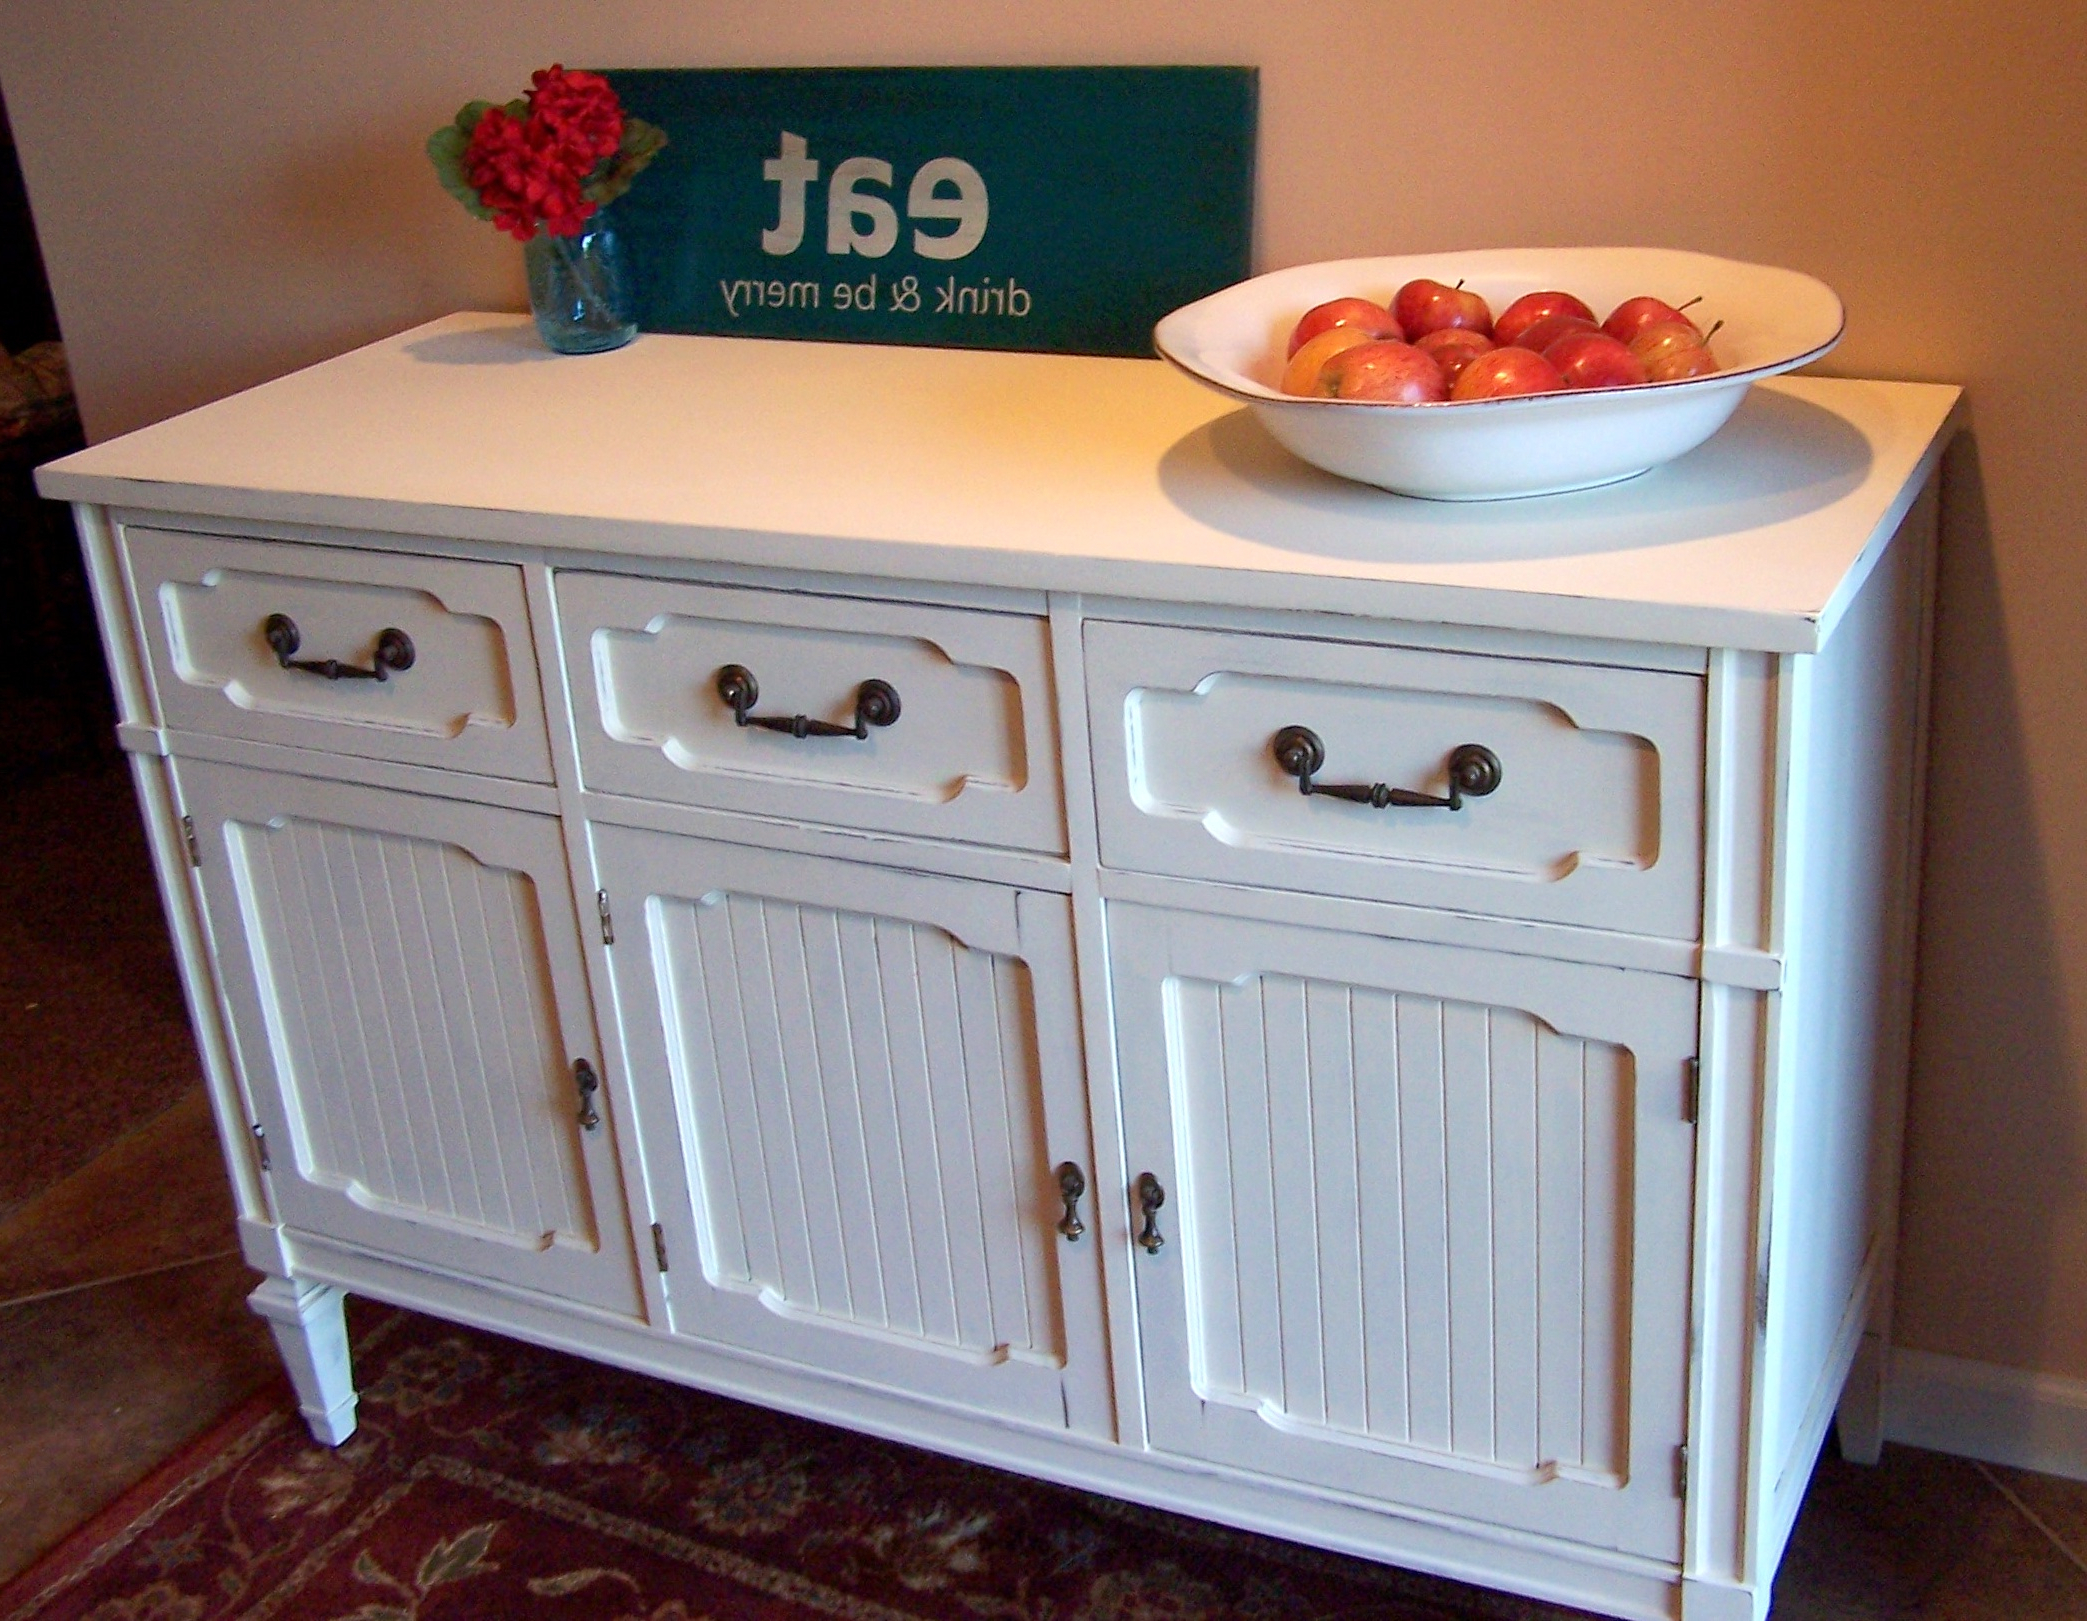 Antique White Sideboards In Recent White Buffet Sideboard Brilliant Or Fresh On Old Urban With Regard (View 2 of 20)